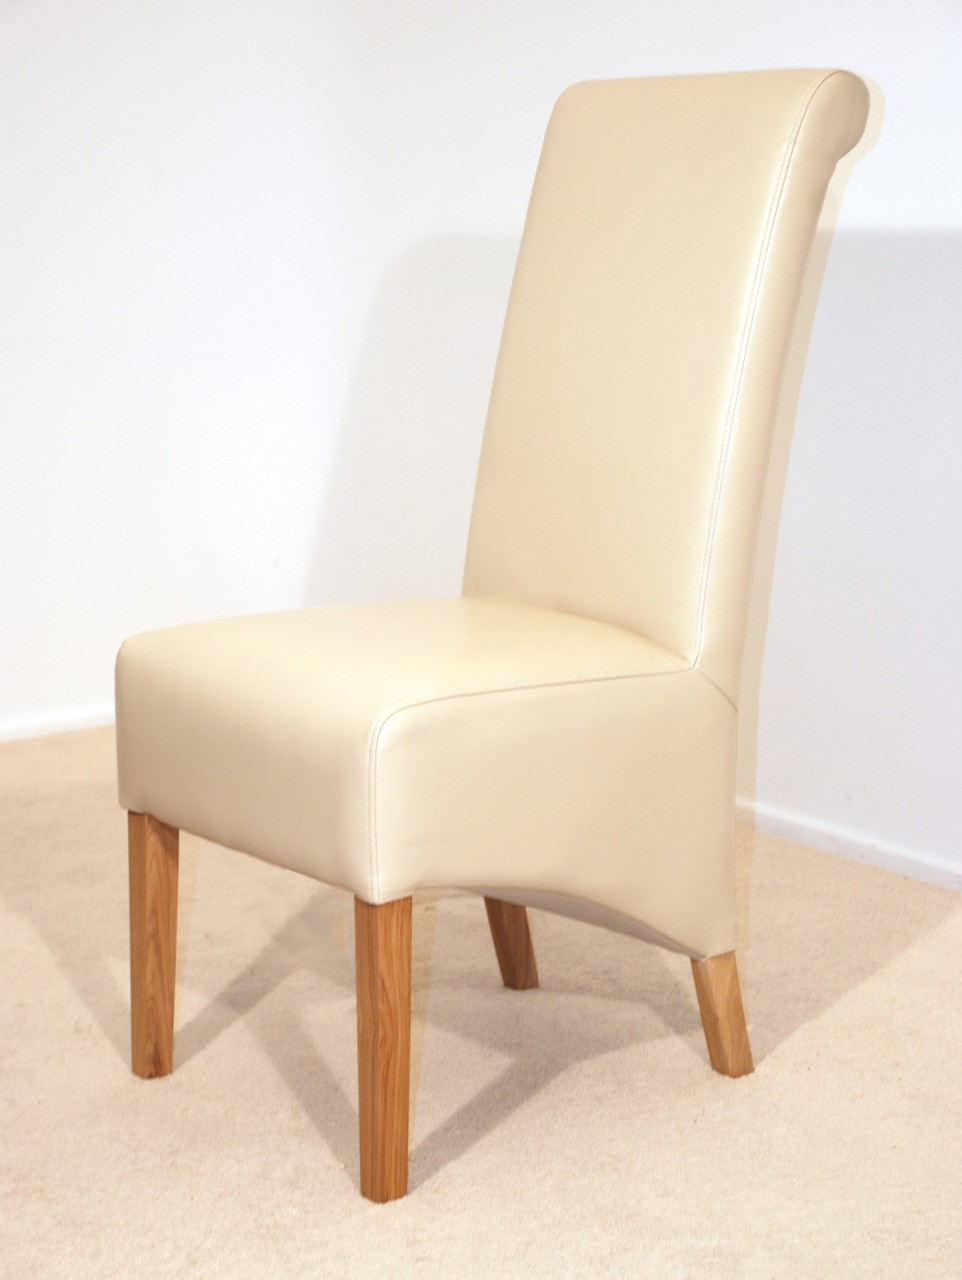 https://www.firstfurniture.co.uk/pub/media/catalog/product/M/a/Malmo_Chair2_71266.jpg